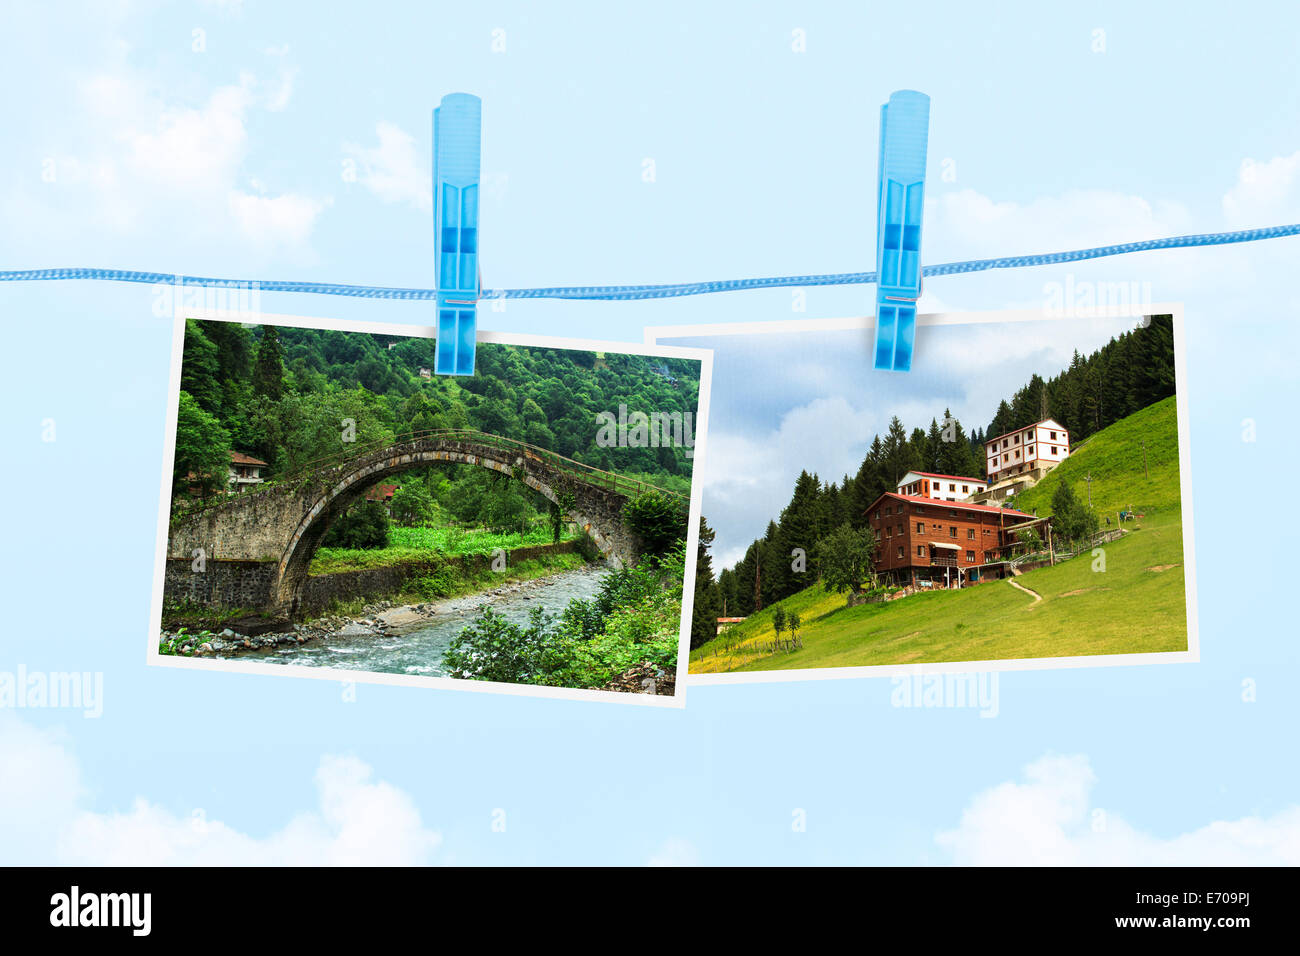 Plateau pictures on paper frame on cloudy background. - Stock Image